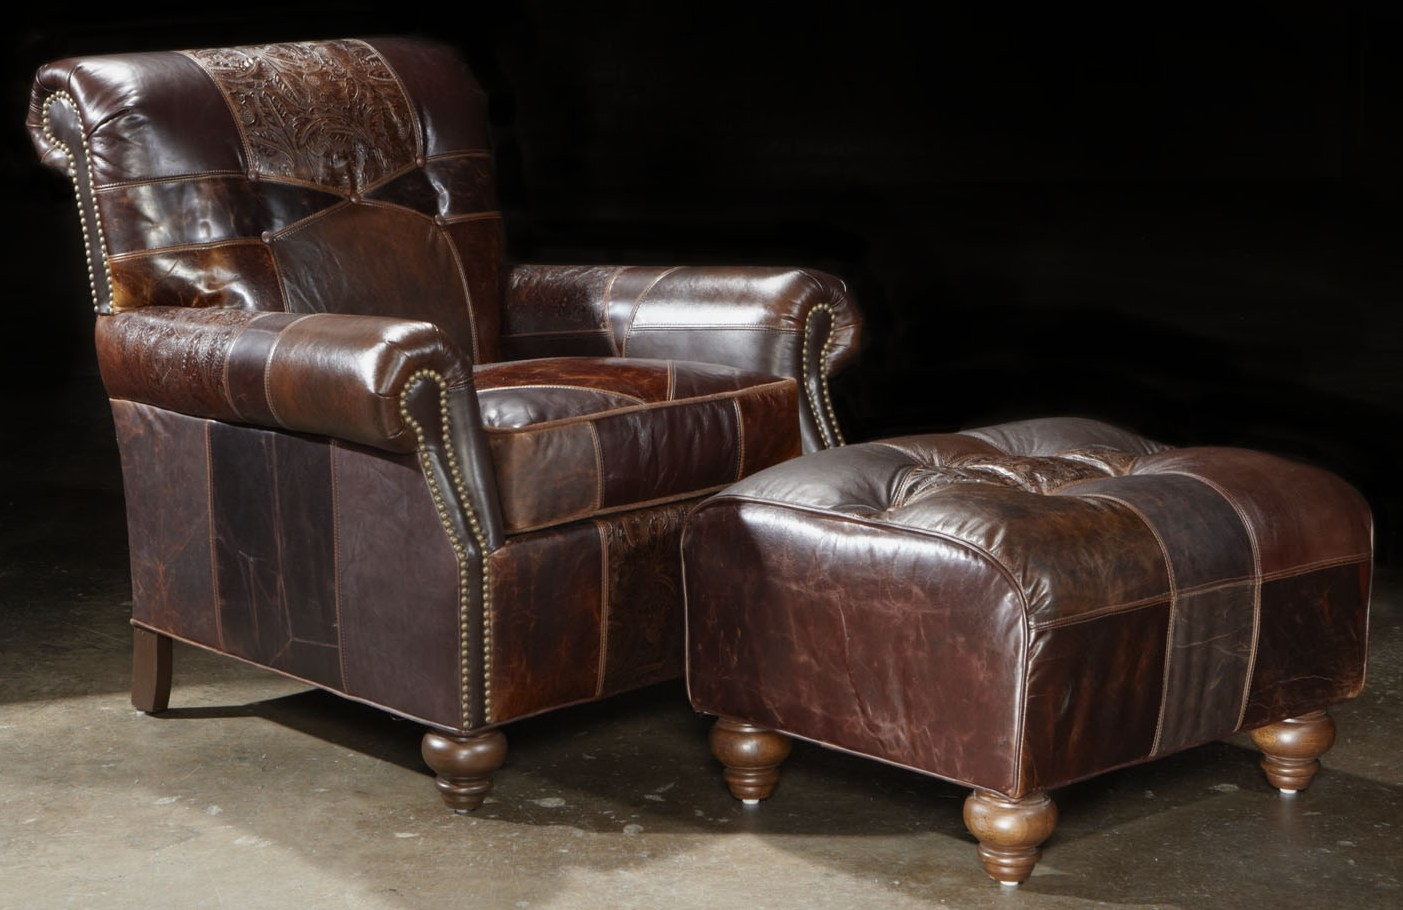 High Quality Luxury Leather U0026 Upholstered Furniture 1 Leather Patches Chair And Ottoman,  Great Looking And Great